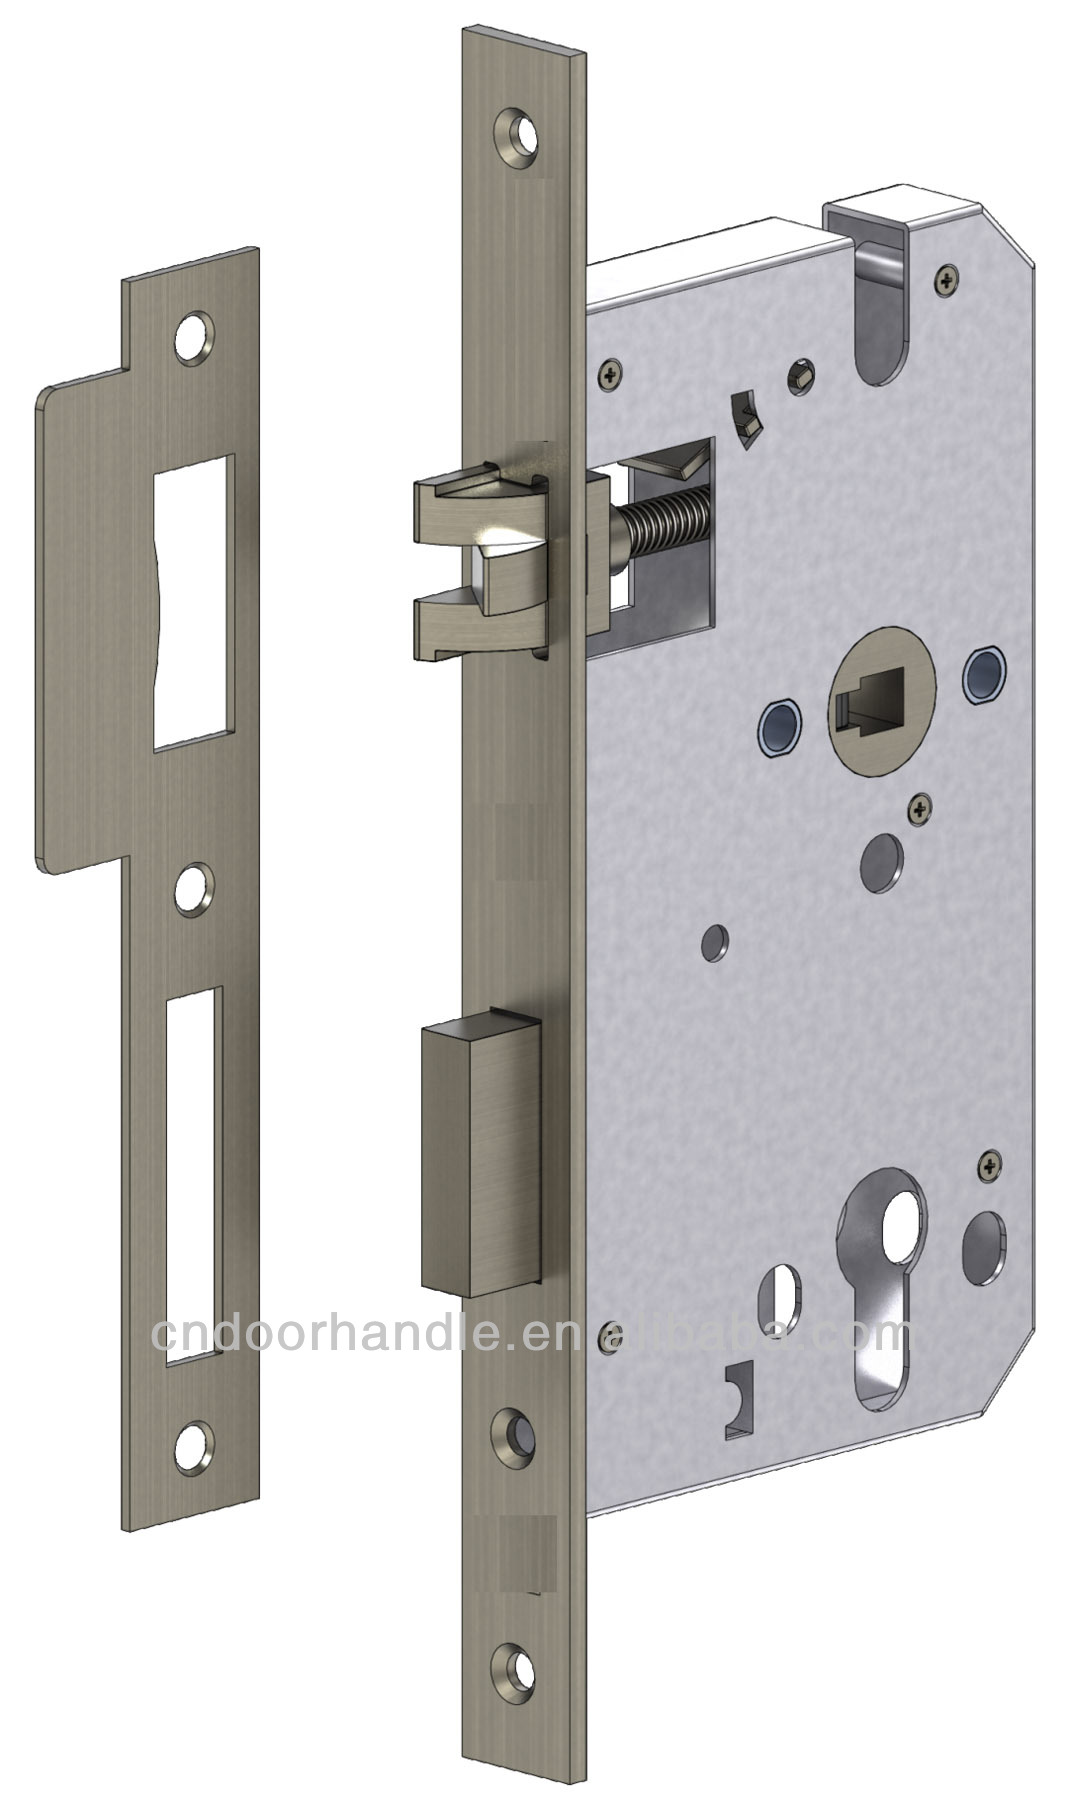 China made european mortise security door locks7260 3 latch